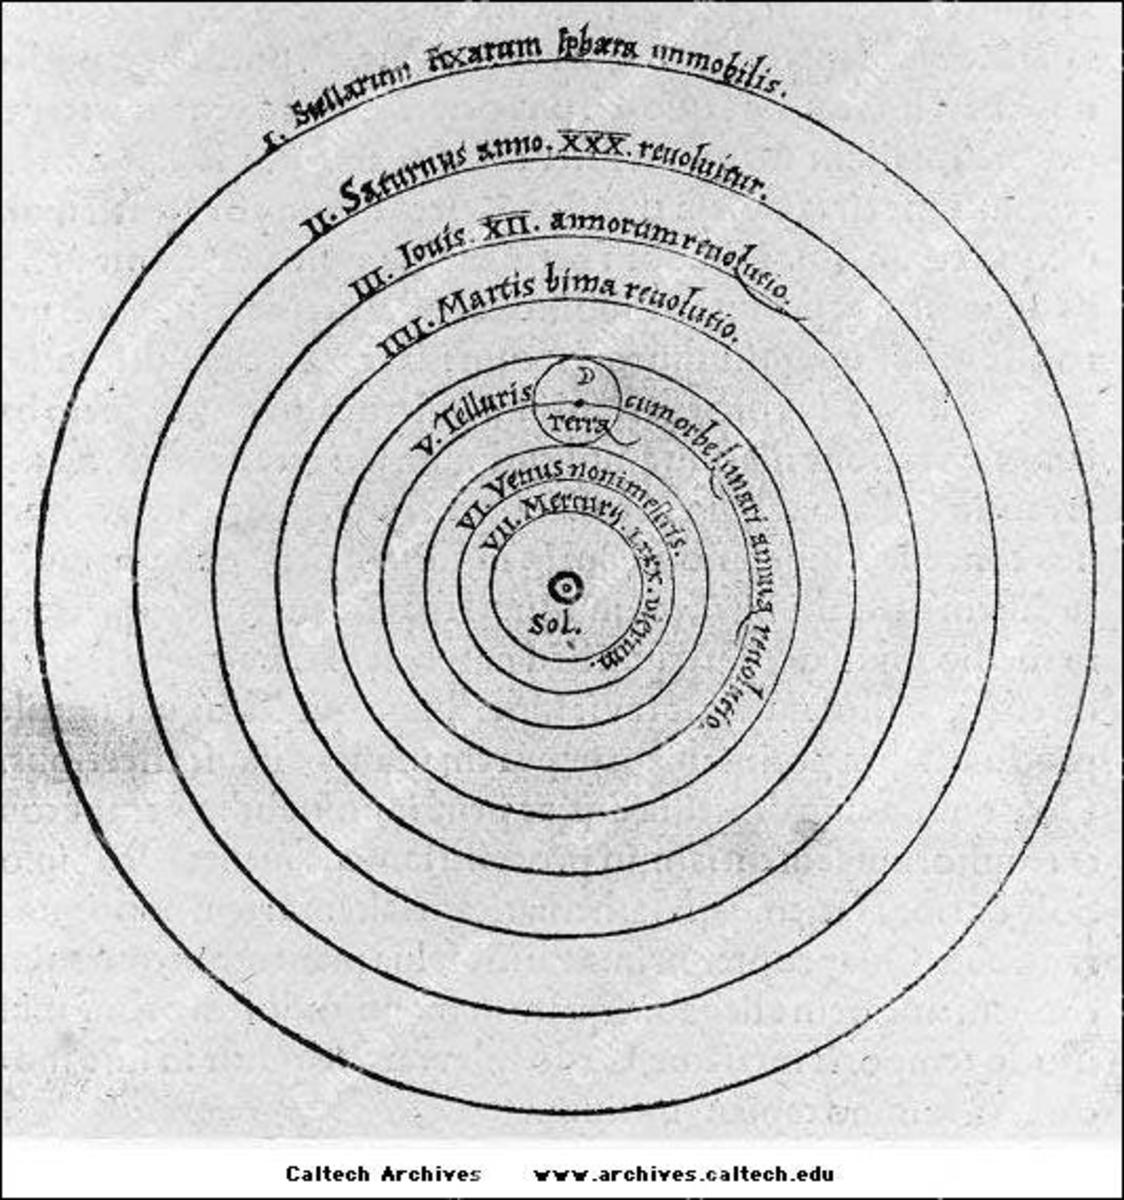 Galileo's Defense of a Heliocentric Universe in his Letter to the Grand Duchess Christina in 1615